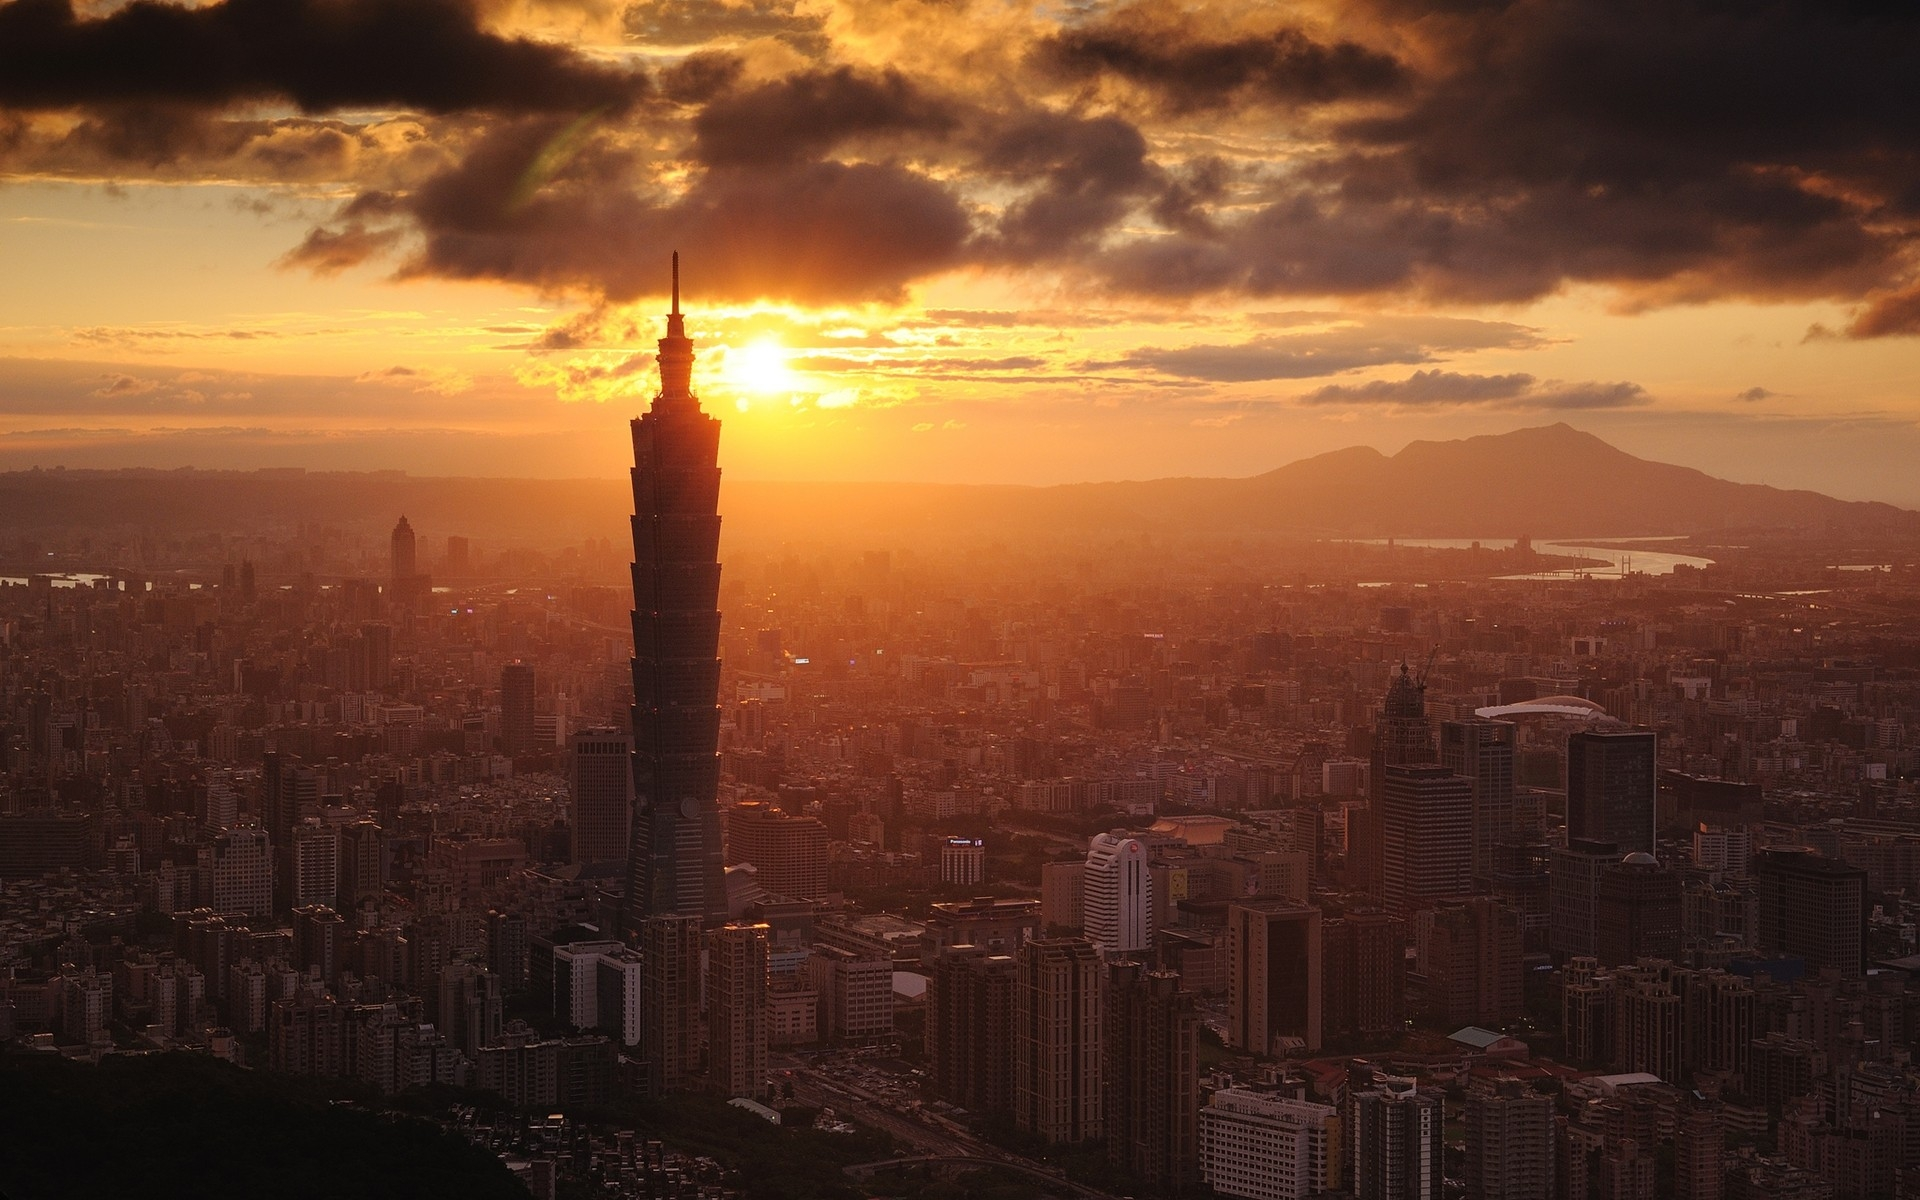 sunset clouds cityscapes buildings skyscrapers taiwan taipei 101